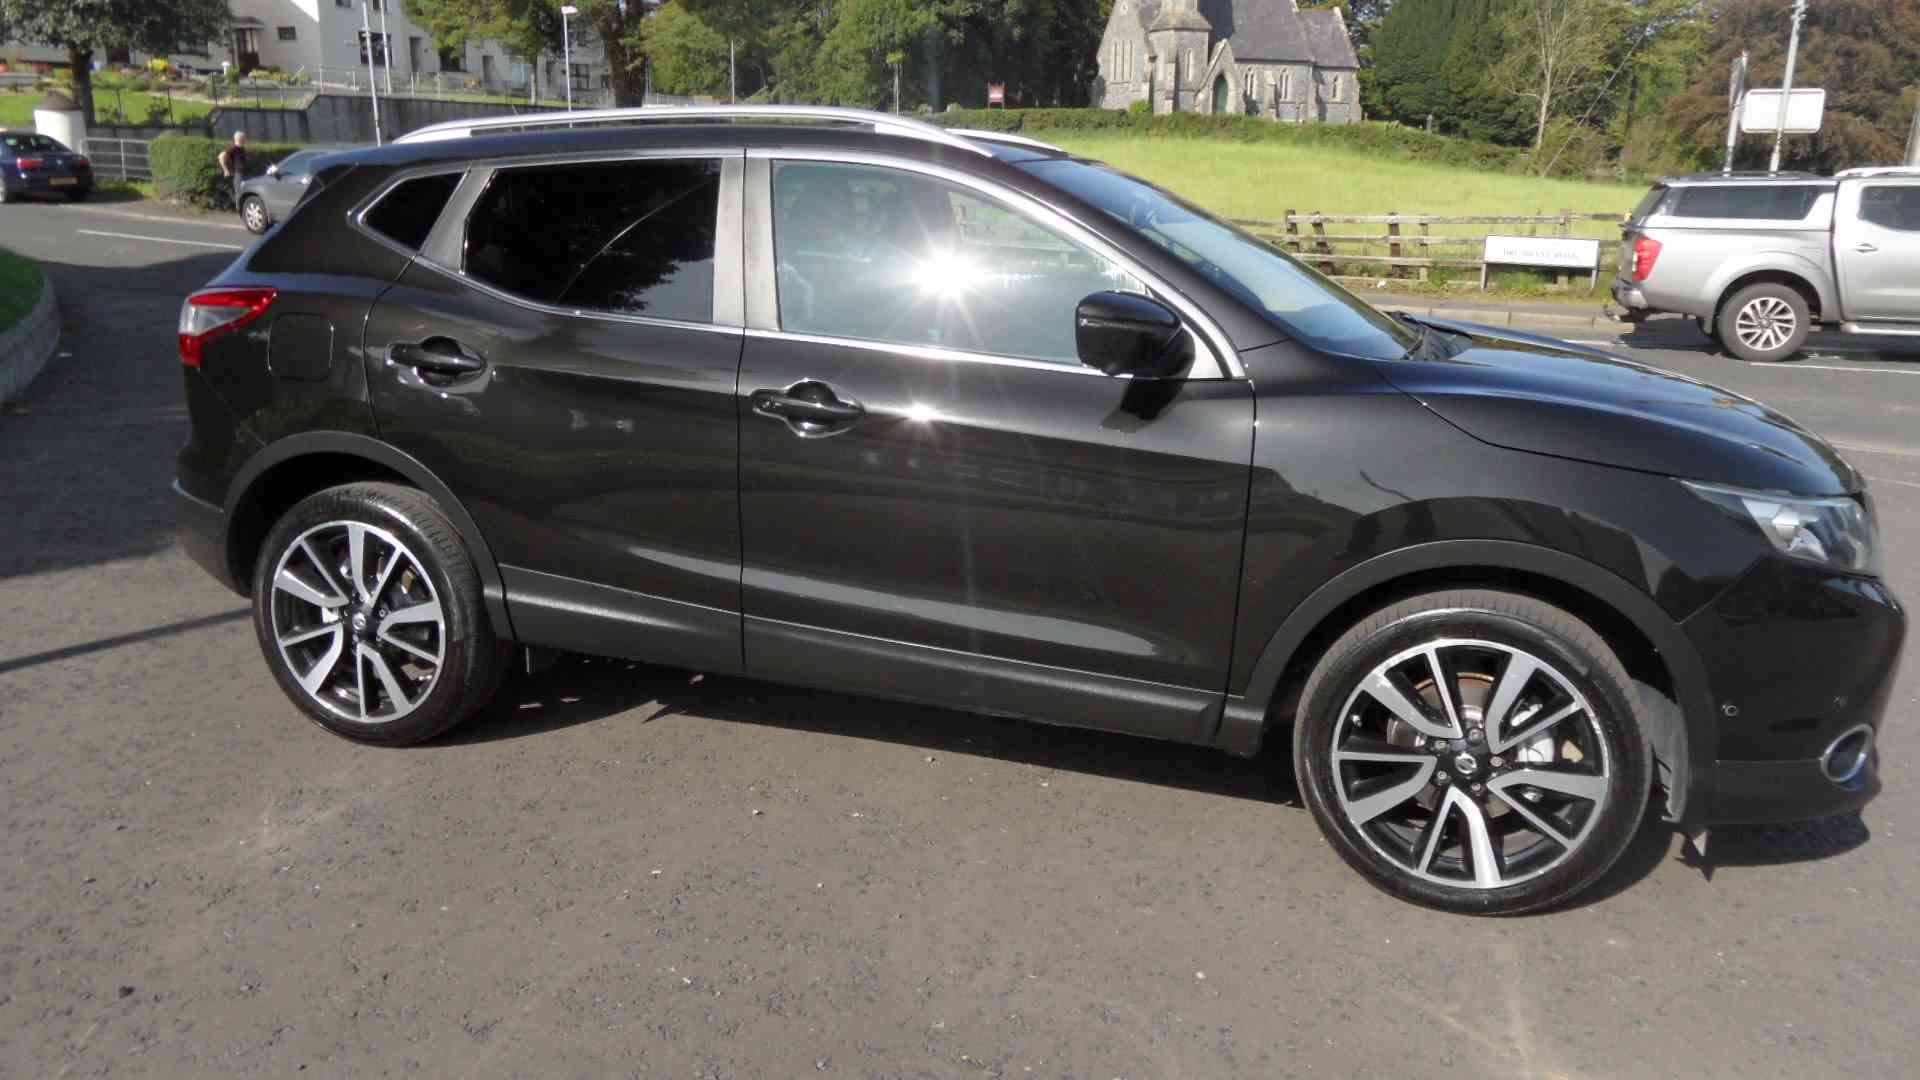 Sought after Qashqai Tekna in Black metallic, automatic gearbox, Pan roof, satnav, reversing camera, fully serviced and ready to go,  call Sean on 07970936458 or 02879401371 to arrange a viewing.